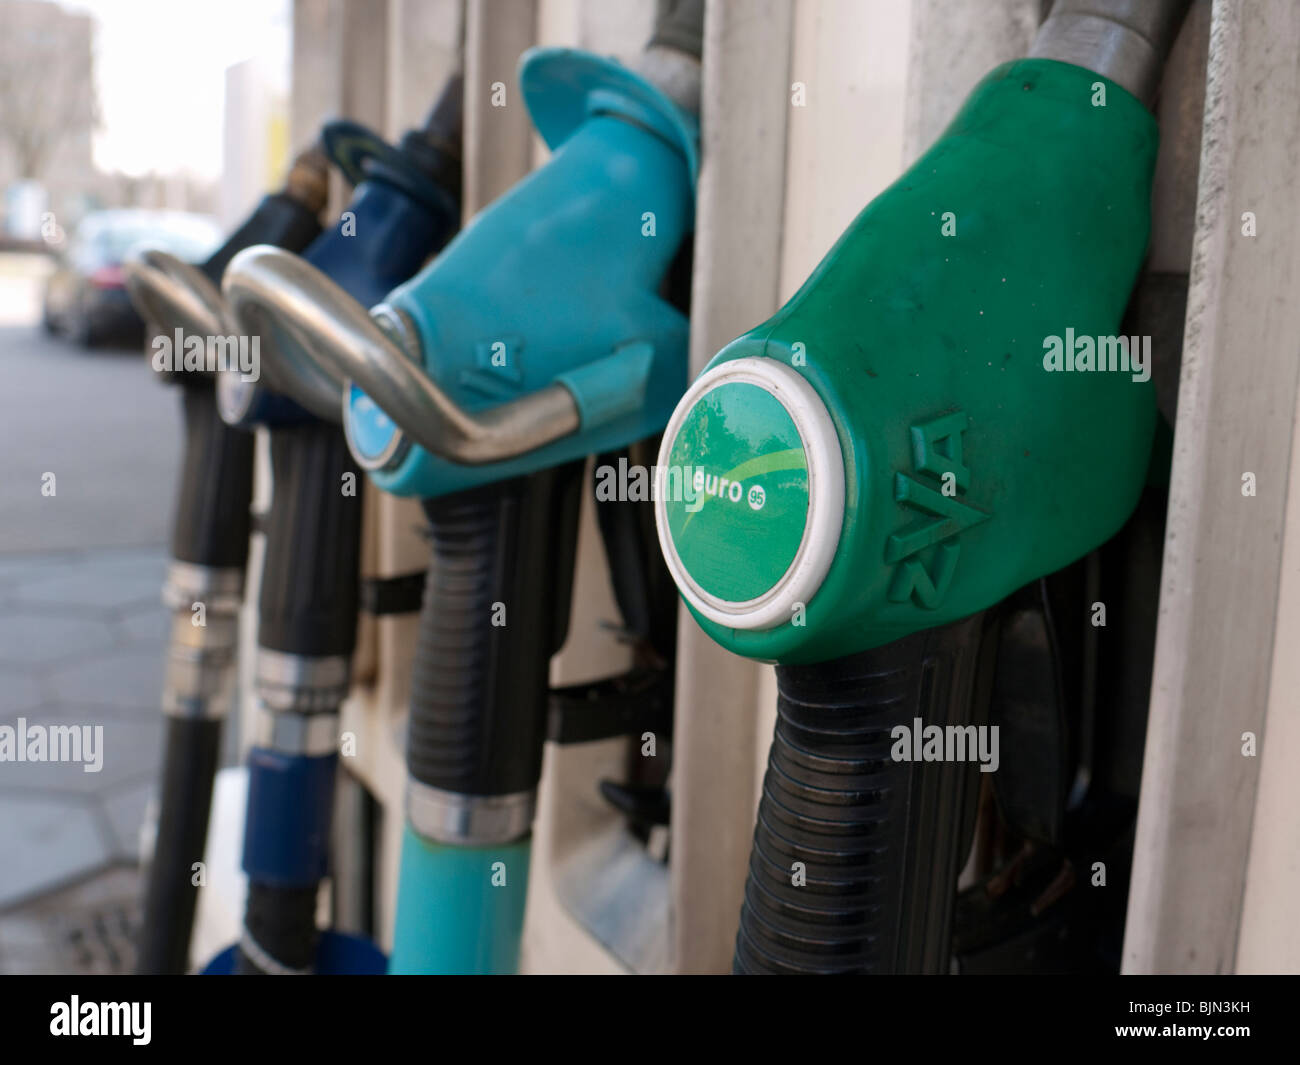 Detail of petrol pumps at BP filling station in the Netherlands - Stock Image